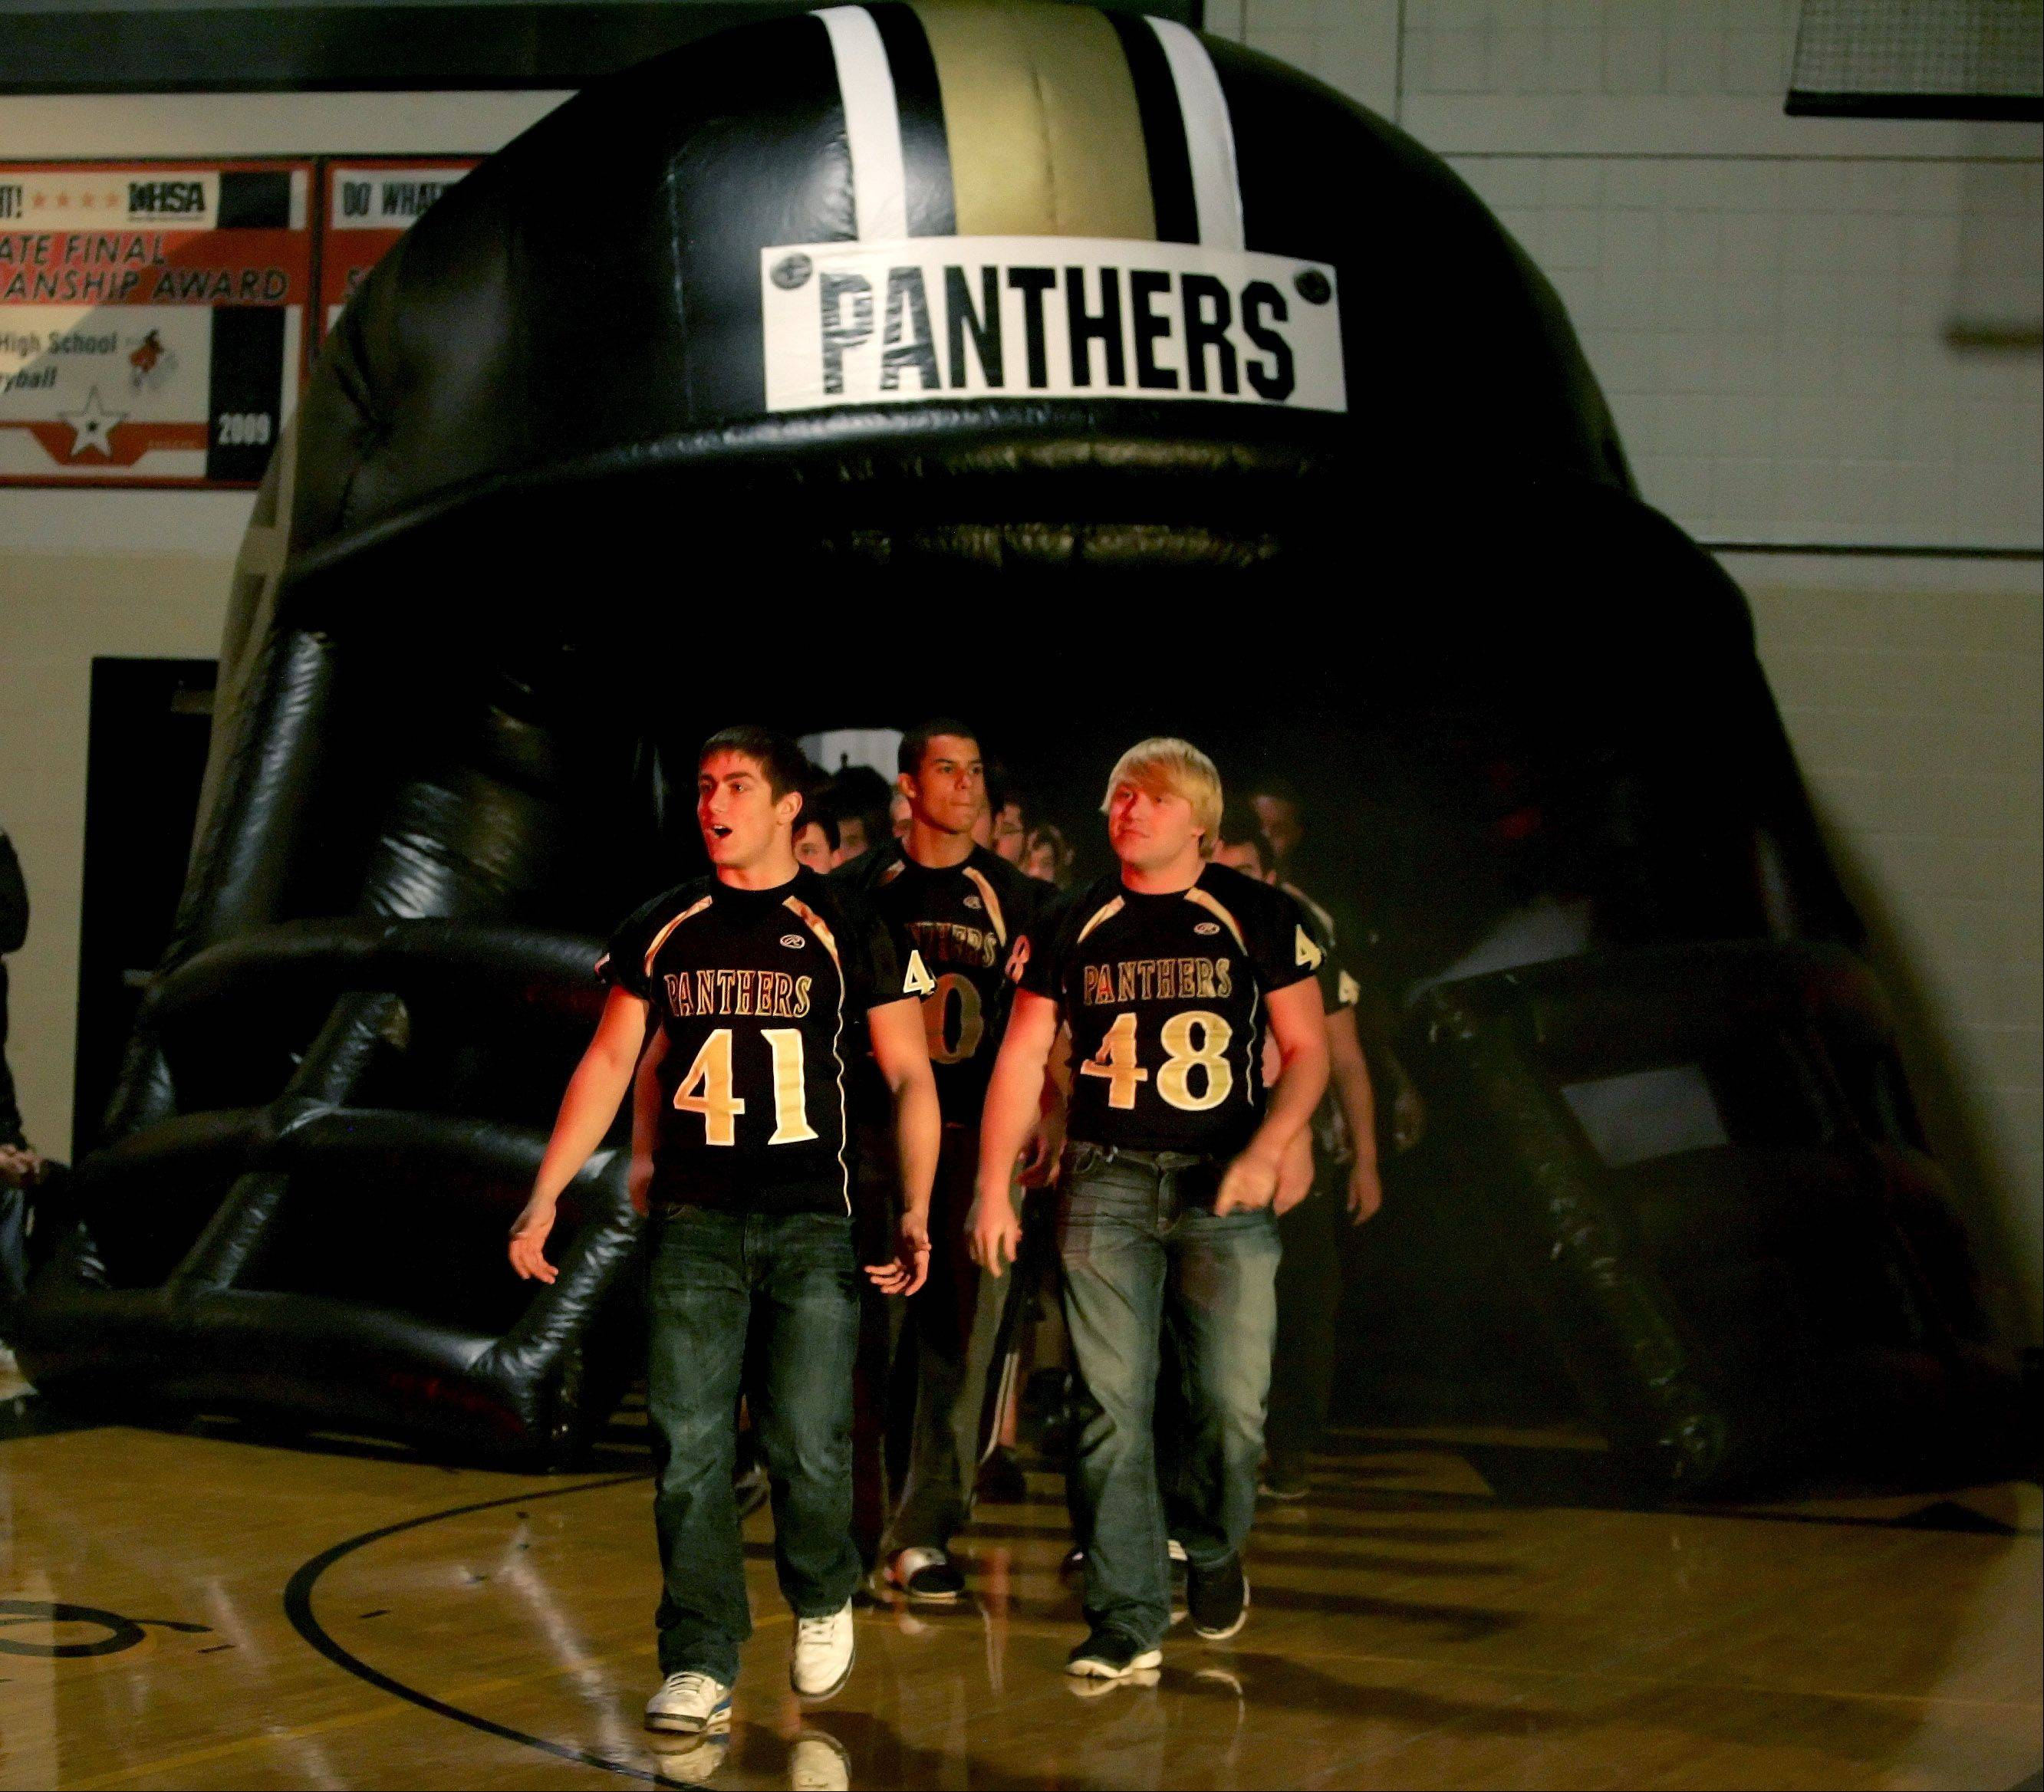 The Glenbard North football team makes its entrance for a pep rally Tuesday in Carol Stream. The team will play Mt. Carmel Saturday in Champaign for the Class 8A State Championship.